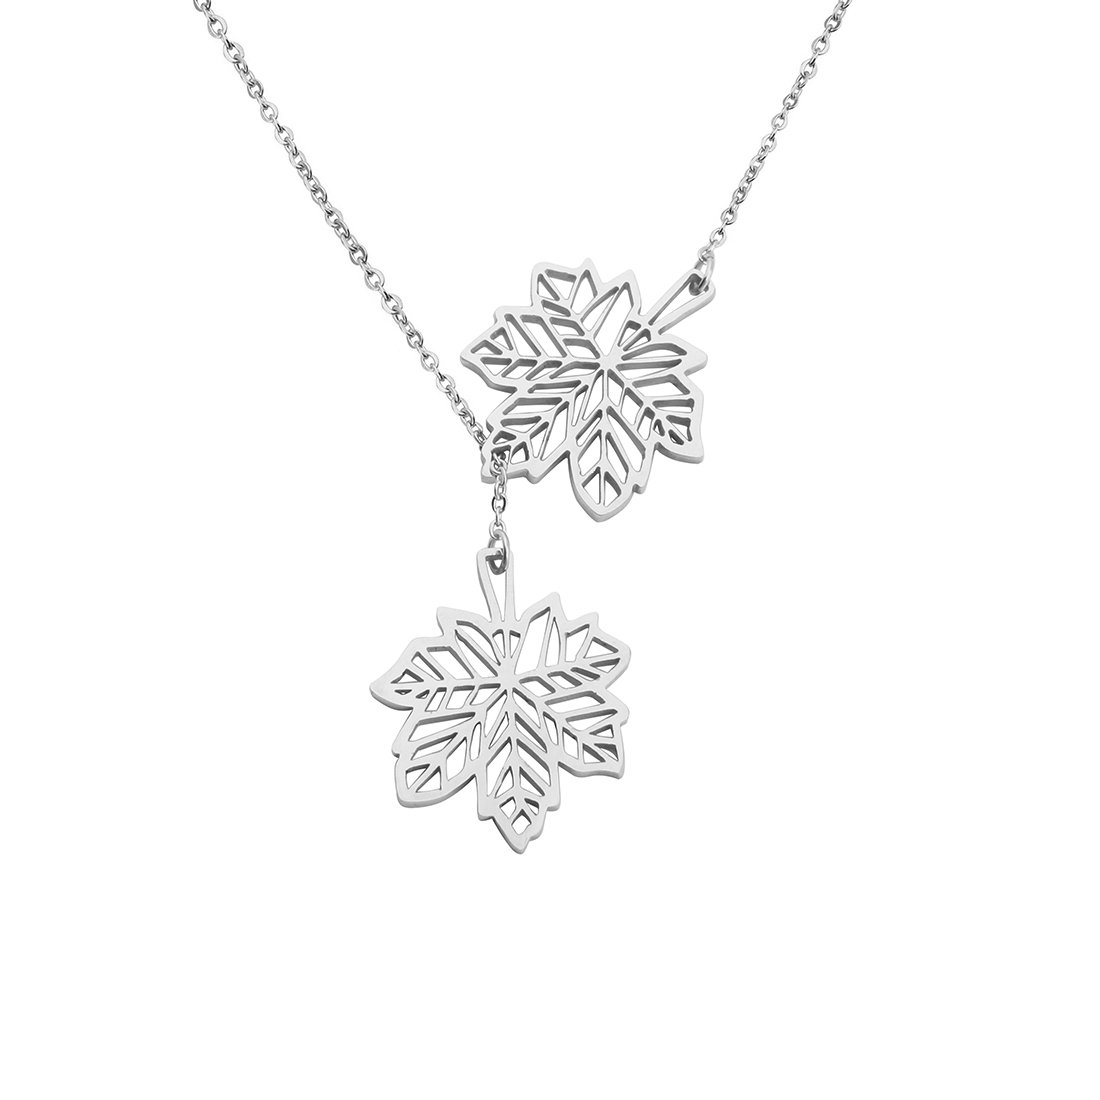 Double Canadian Maple Leaves Y Lariat Necklace for Women Girls KUIYAI